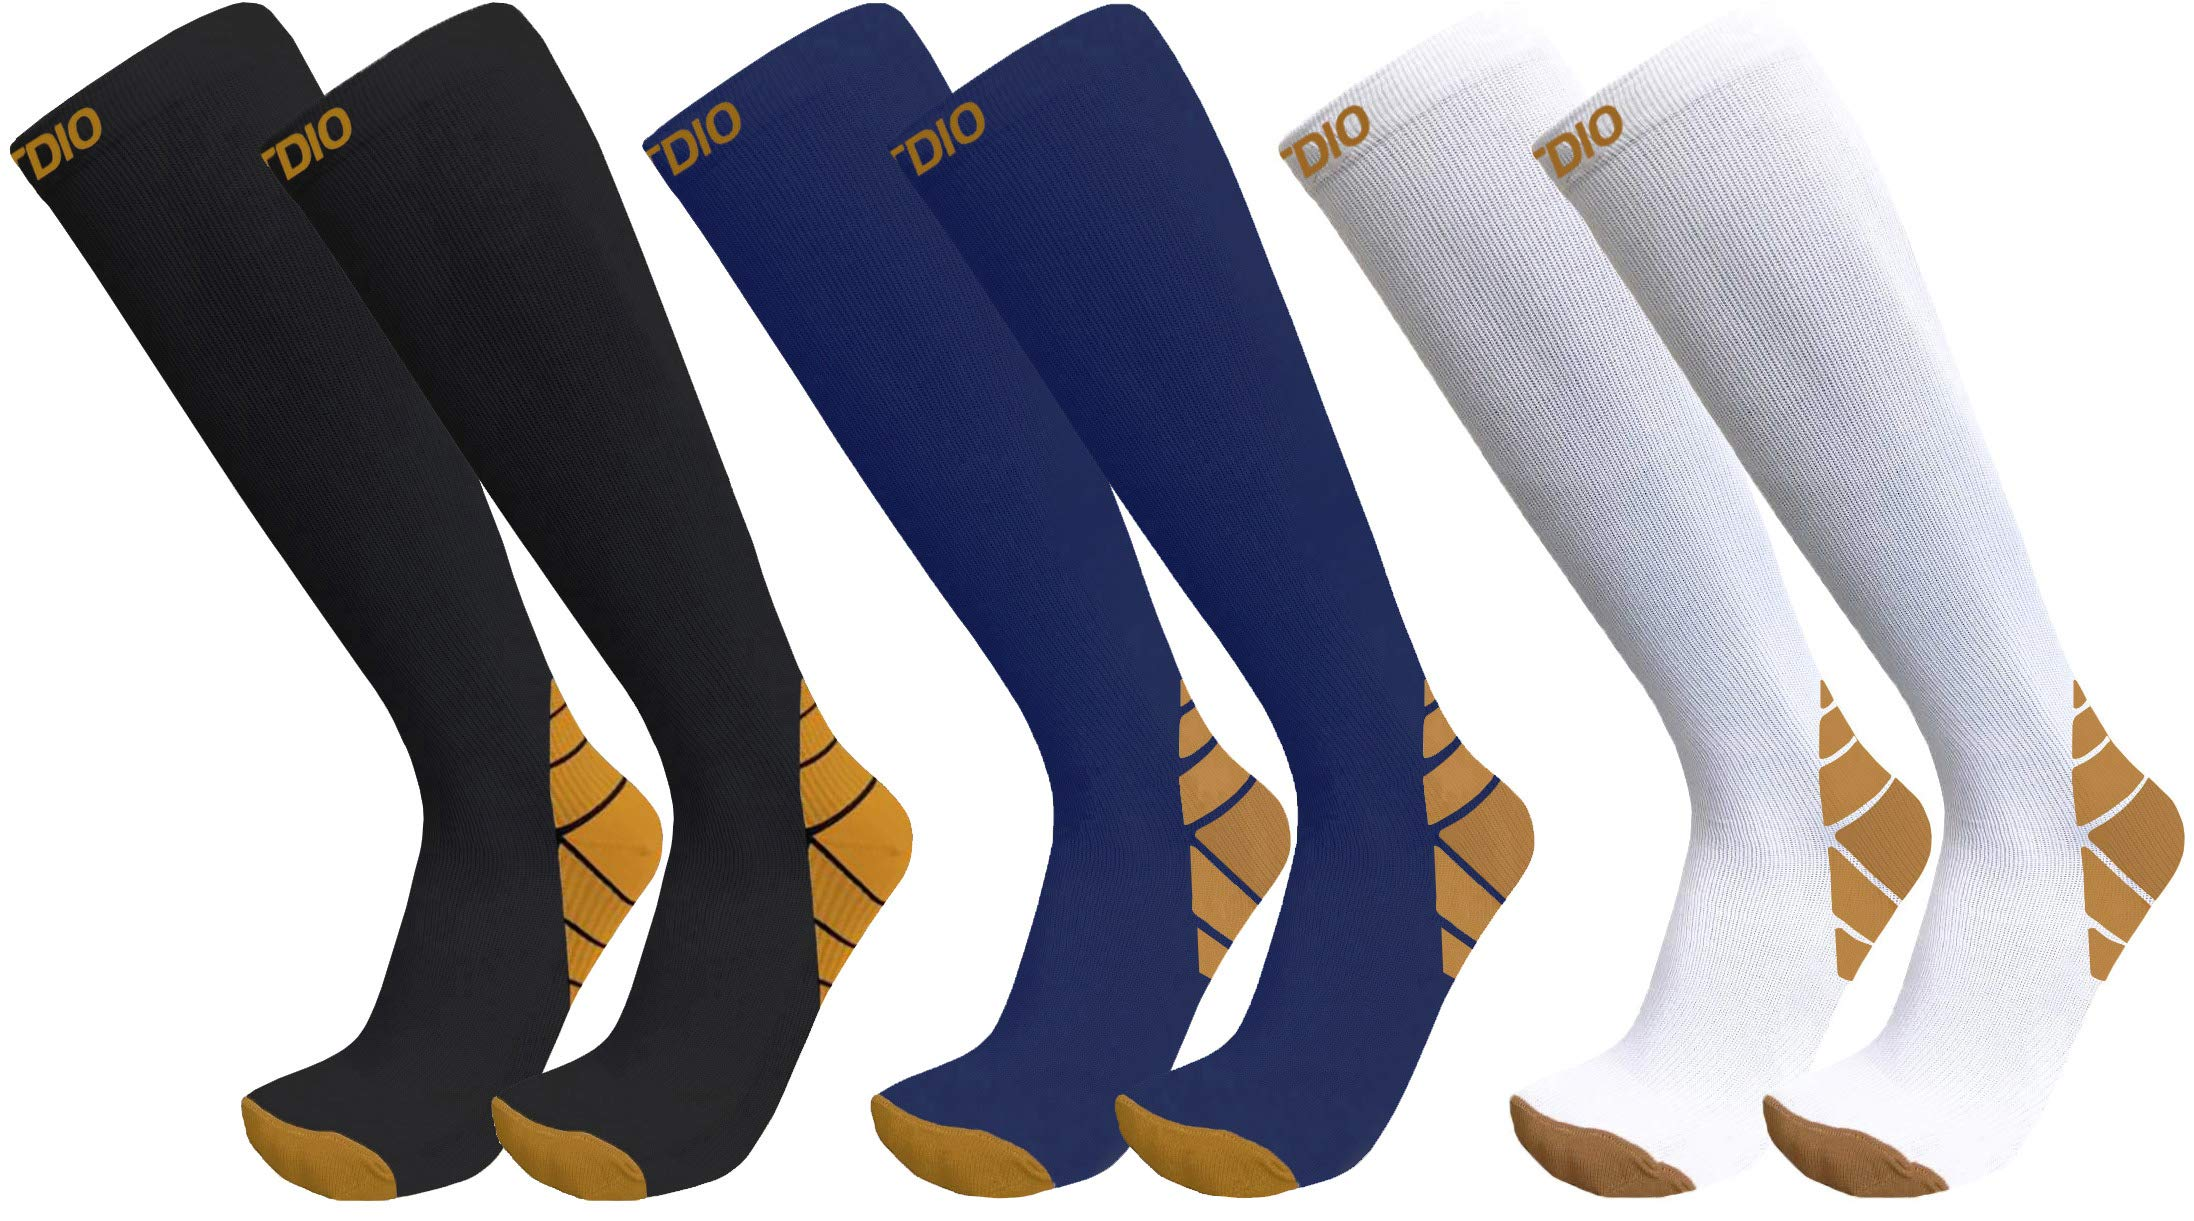 Plus Size Wide Calf 3-Pairs Halcyon Knee High Graduated 20-30mmHG Compression Socks for Men & Women (4XL/5XL, Assorted)